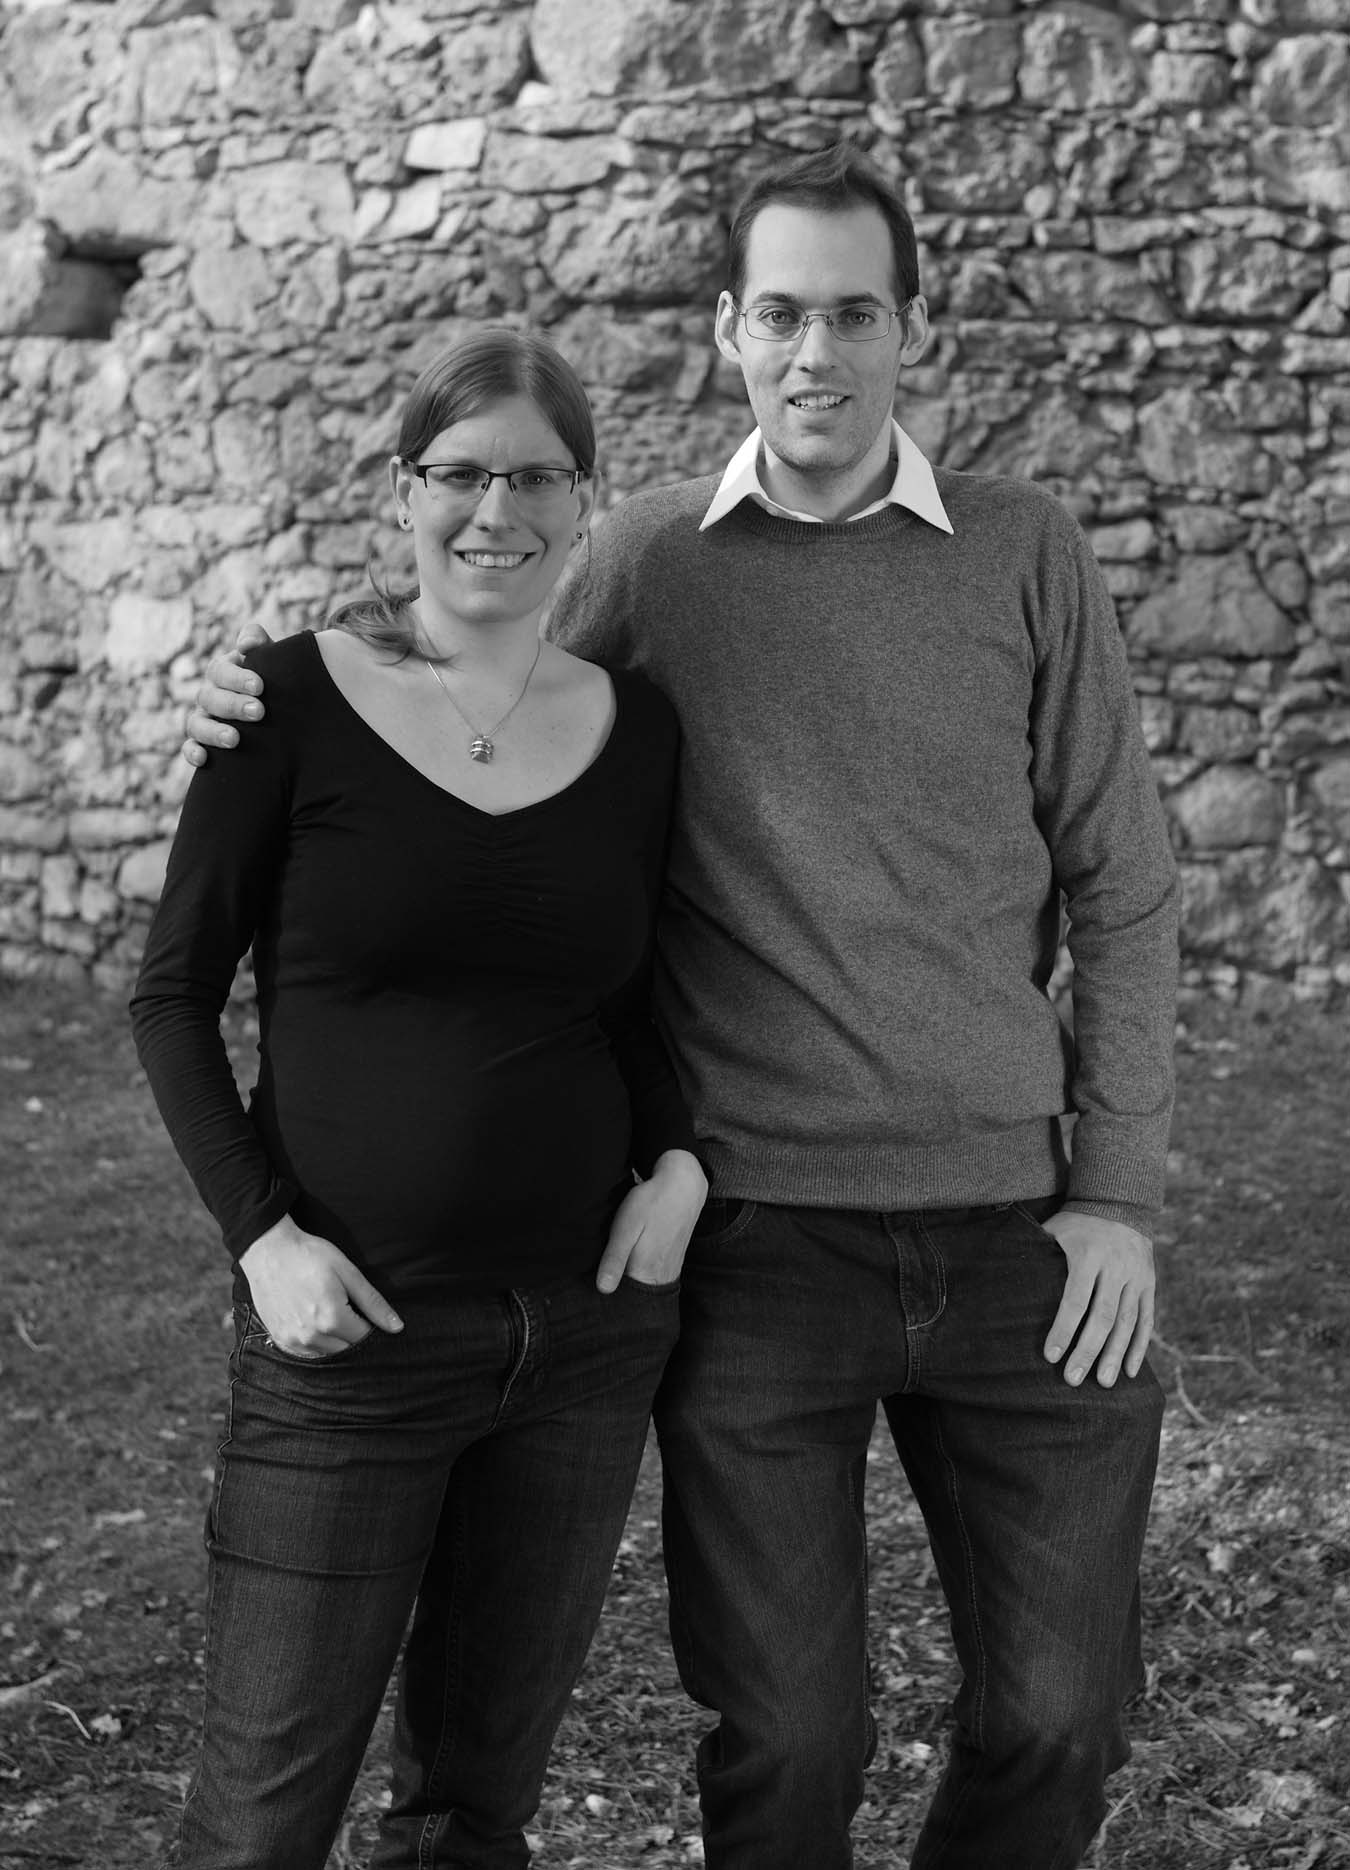 Ann-Katrin and Thomas in elegant outfit outside - stone wall as background